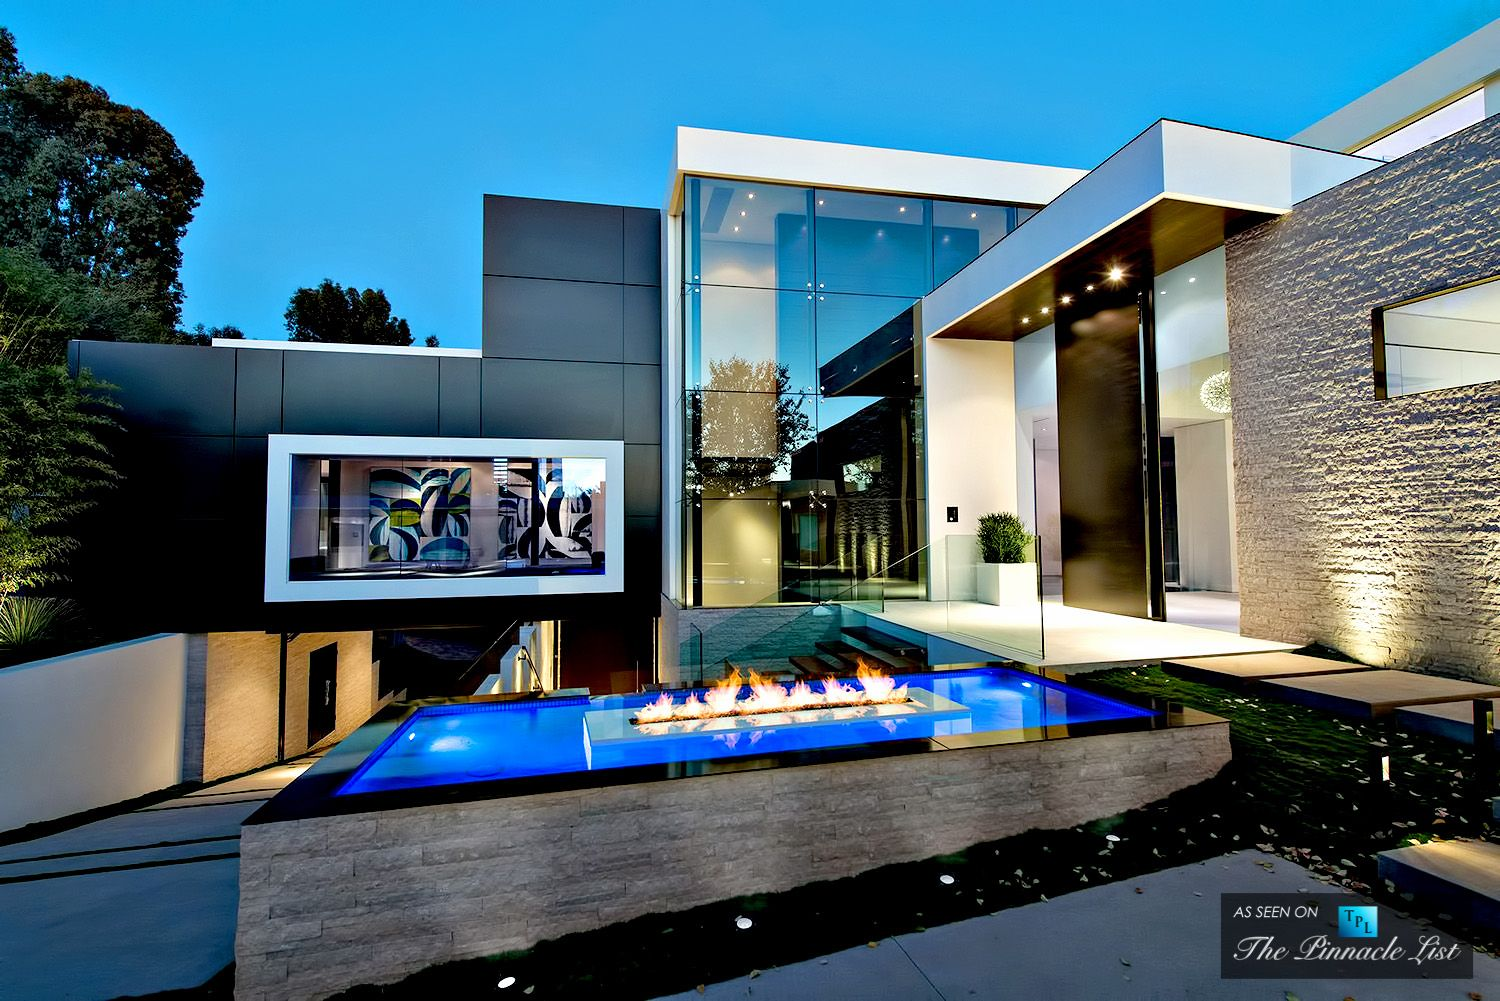 1201 Laurel Way Residence Beverly Hills Los Angeles Modern Villa Architecture Hollywood Desi Architecture House Modern Architecture Design Architecture